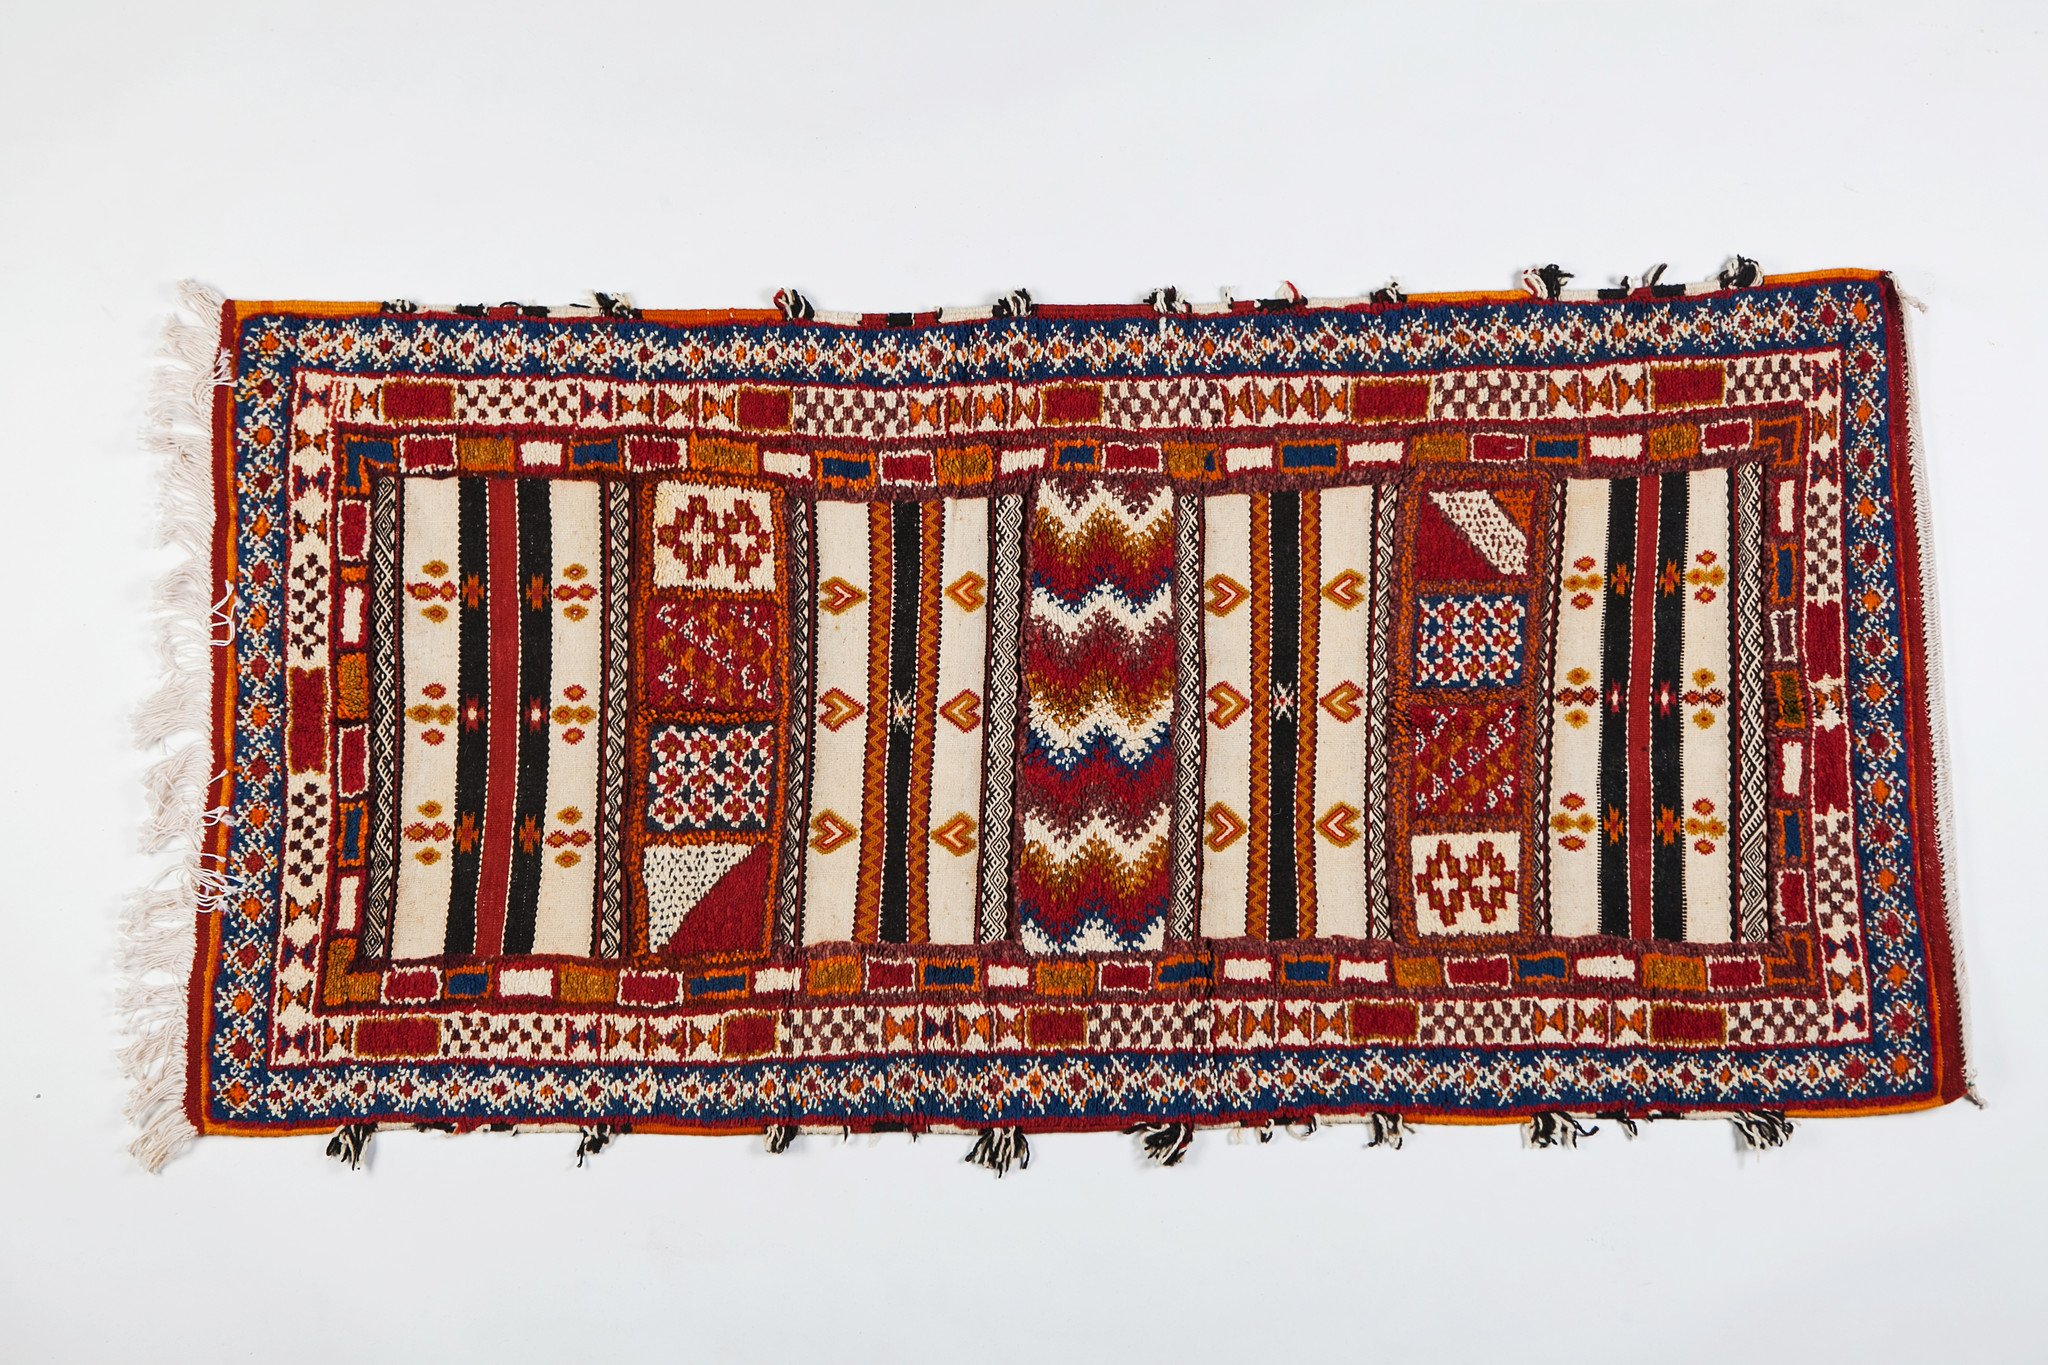 Berber Rug - Handwoven in Morocco with Abstract Design